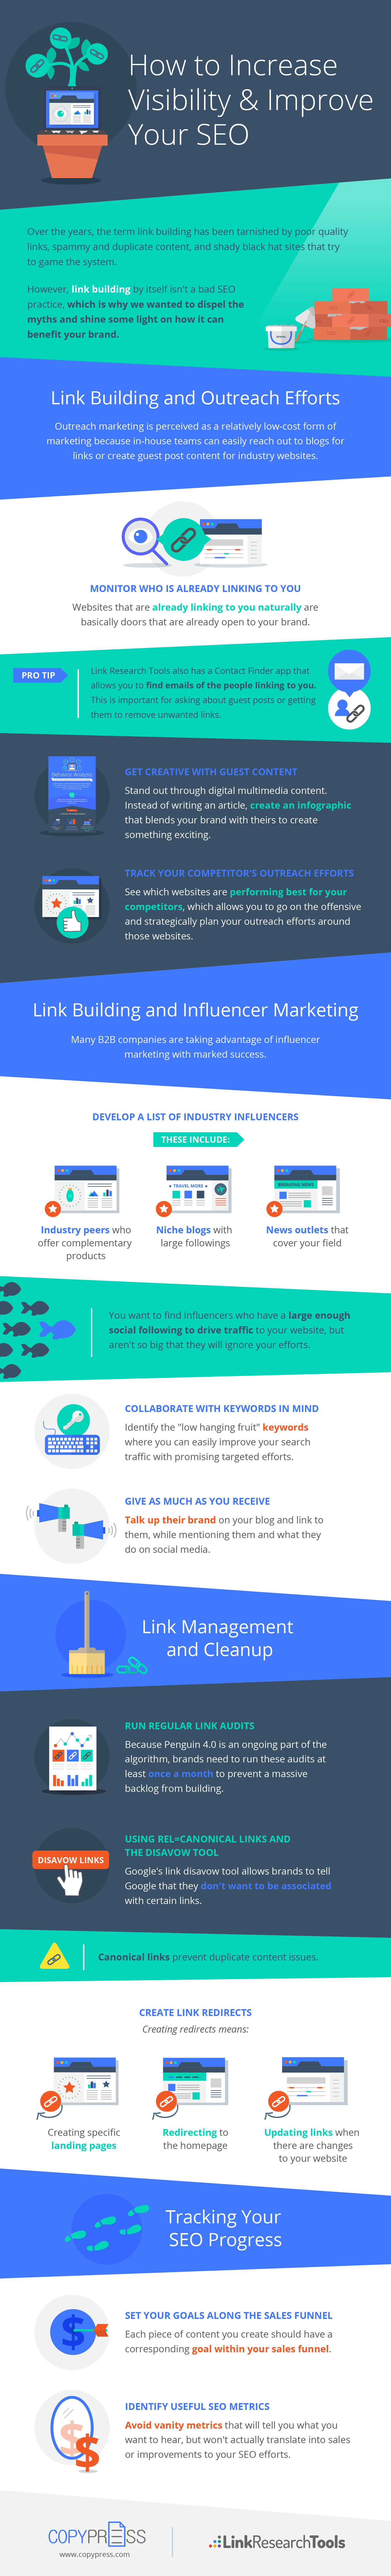 Increase+Site+Visibility+&+Improve+SEO+[Infographic].png